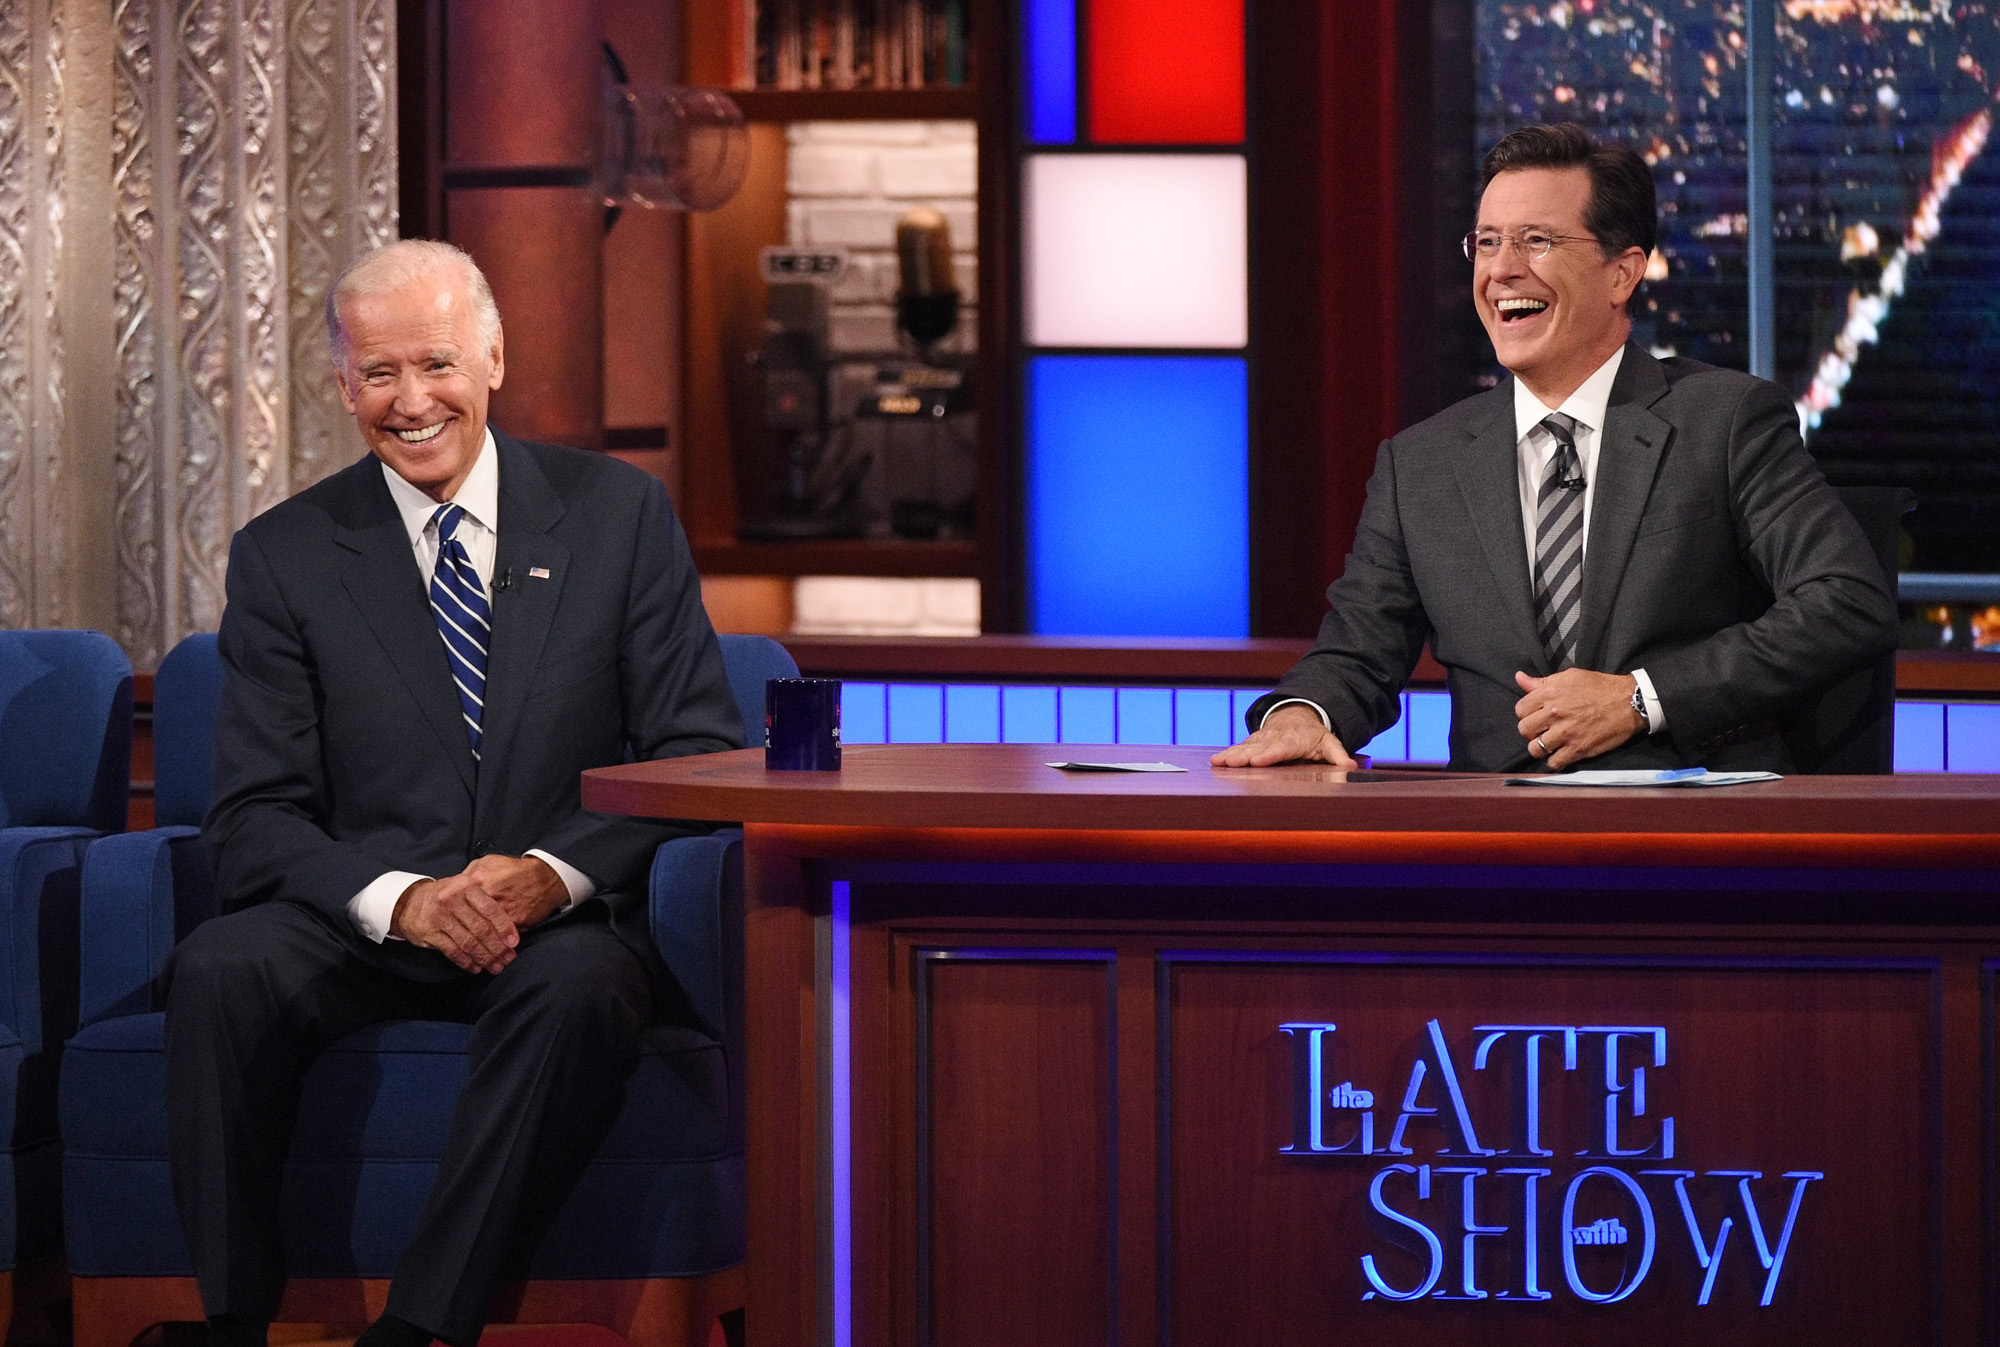 Stephen talks with Vice President Joe Biden, on The Late Show with Stephen Colbert, Thursday Sept 10, 2015 on the CBS Television Network. Photo: Jeffrey R. Staab/CBS ©2015 CBS Broadcasting Inc. All Rights Reserved